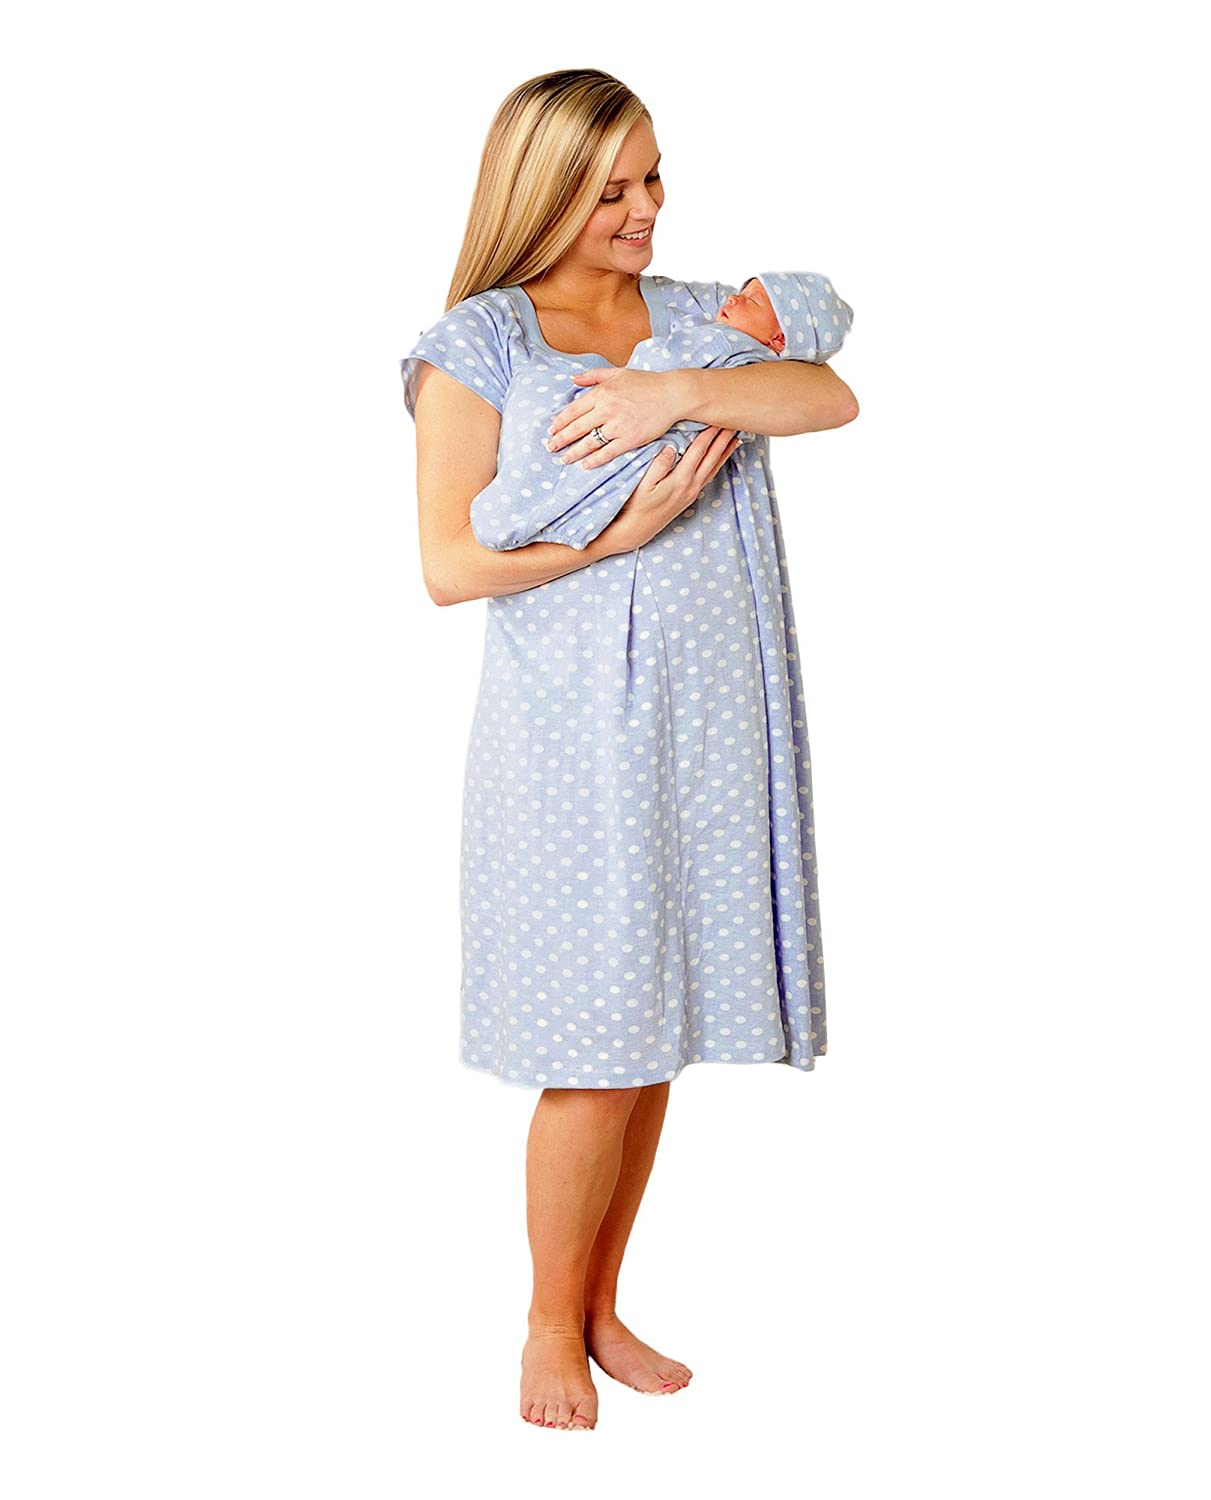 Amazon.com: 100% Cotton Maternity Nursing Nightgown Pregnancy ...